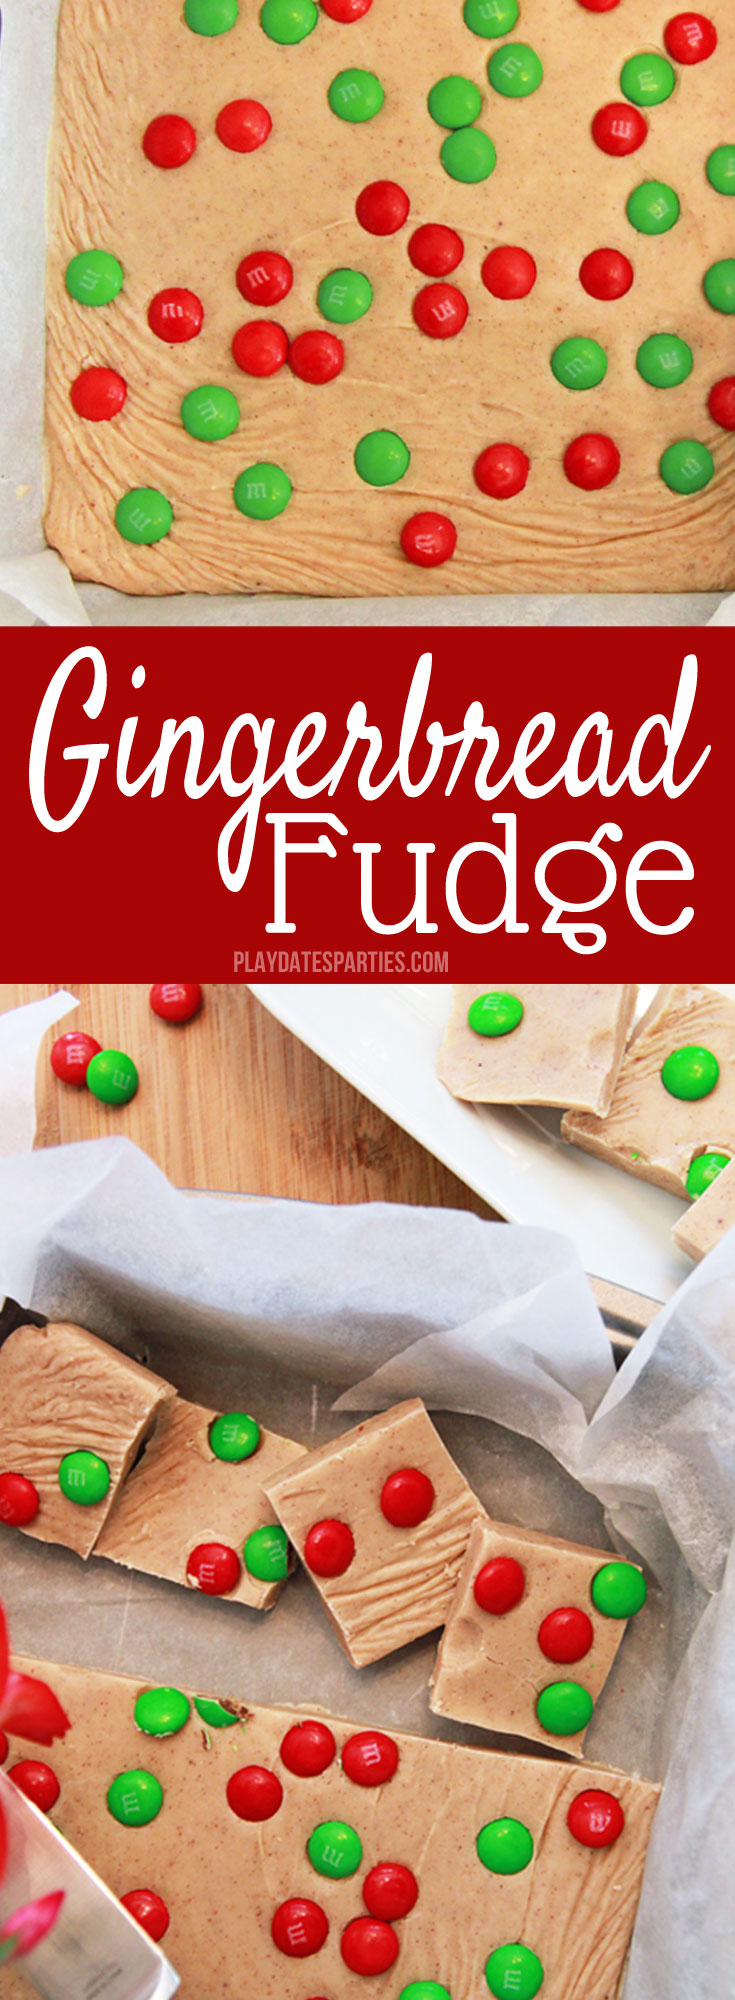 If you love #gingerbread...this fudge #recipe is for you! Best of all, it's so EASY! Smooth and creamy gingerbread fudge is a fantastic way to spice up your #holiday platter this season.